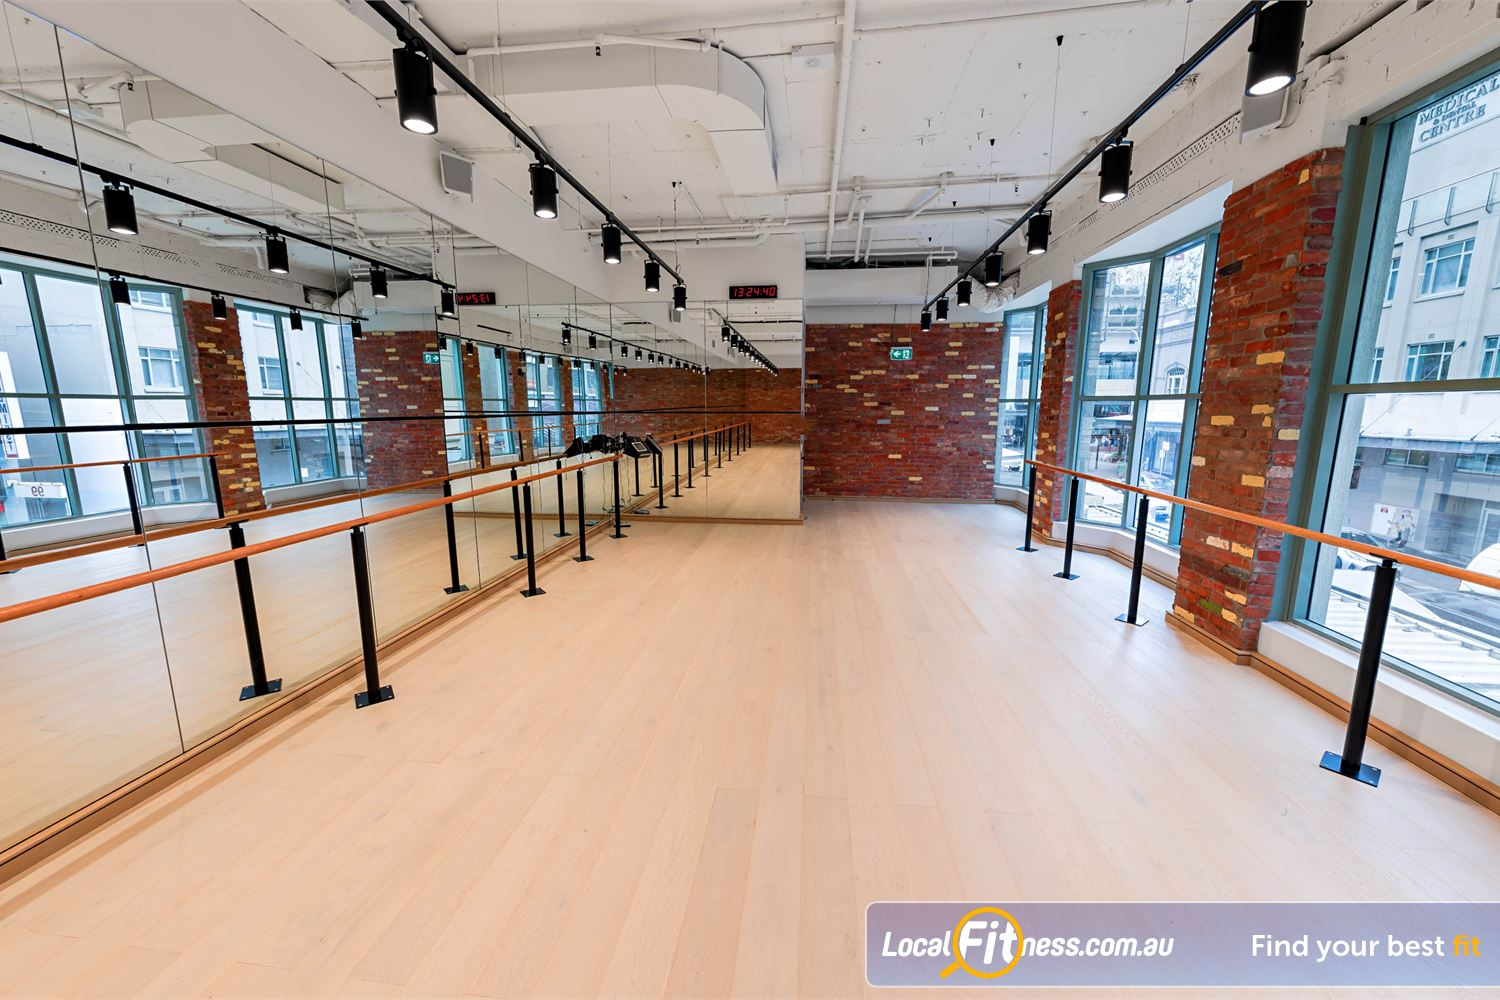 Fitness First Platinum Spring St Bondi Junction Be inspired in our New York style Bondi Barre Studio.